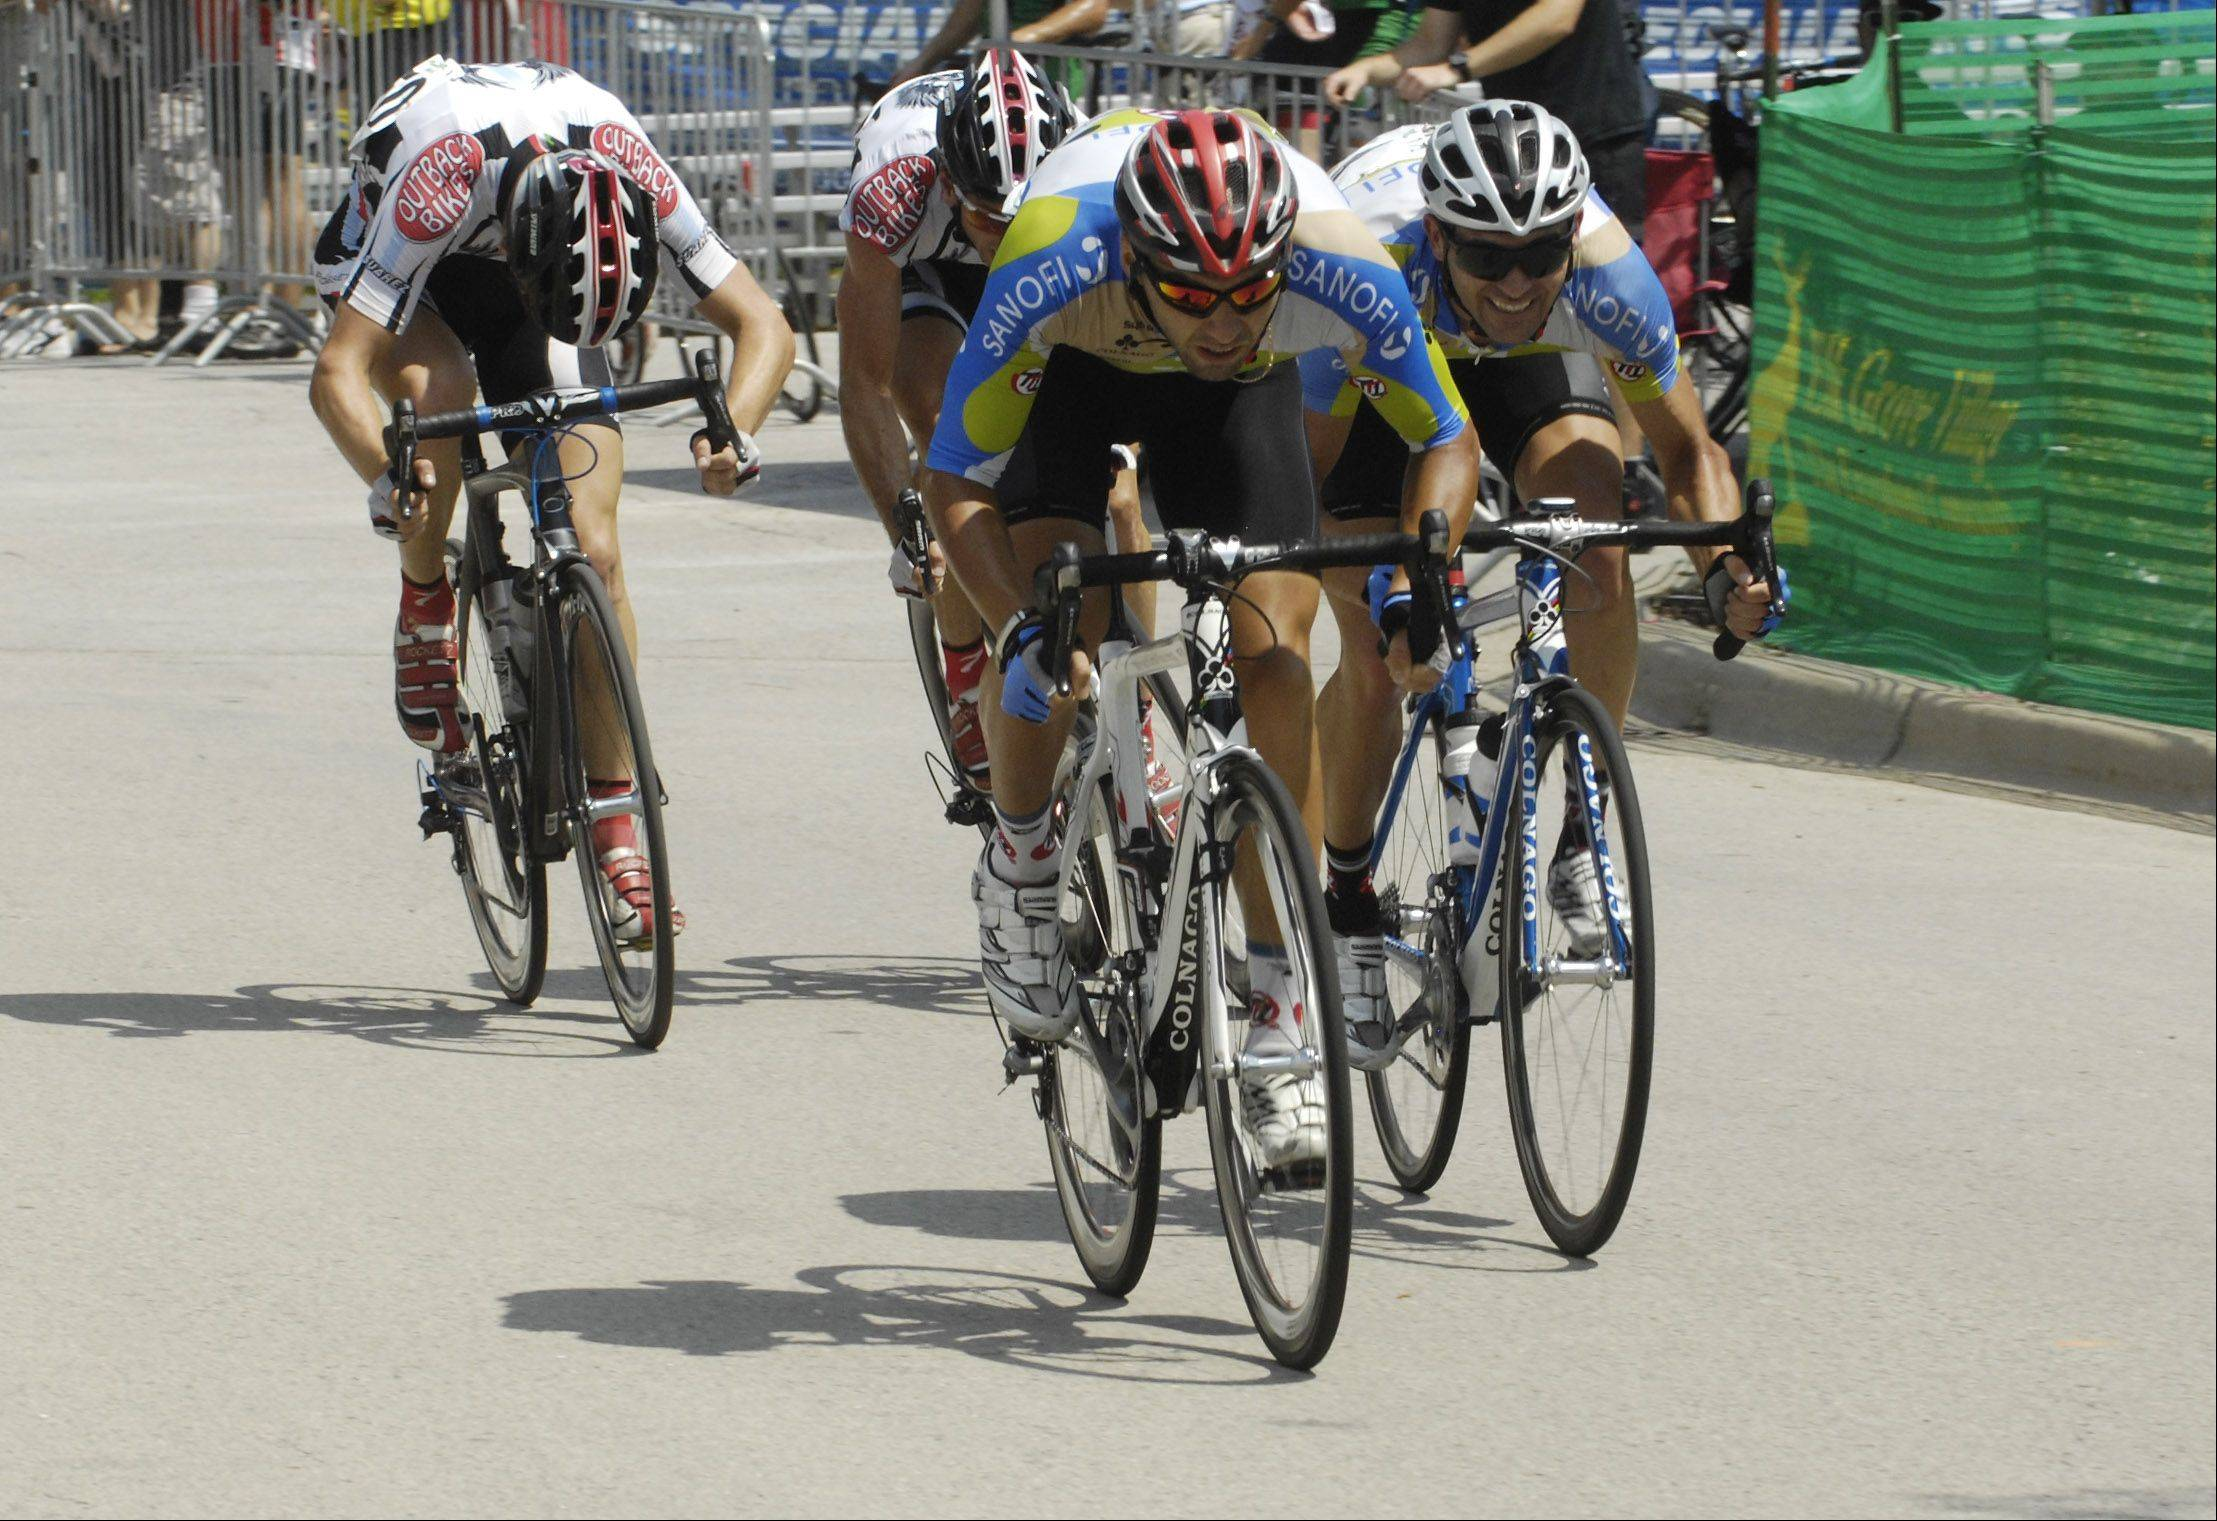 Riders head for the finish line in the ComEd Category 1/2 during the Tour of Elk Grove Saturday.